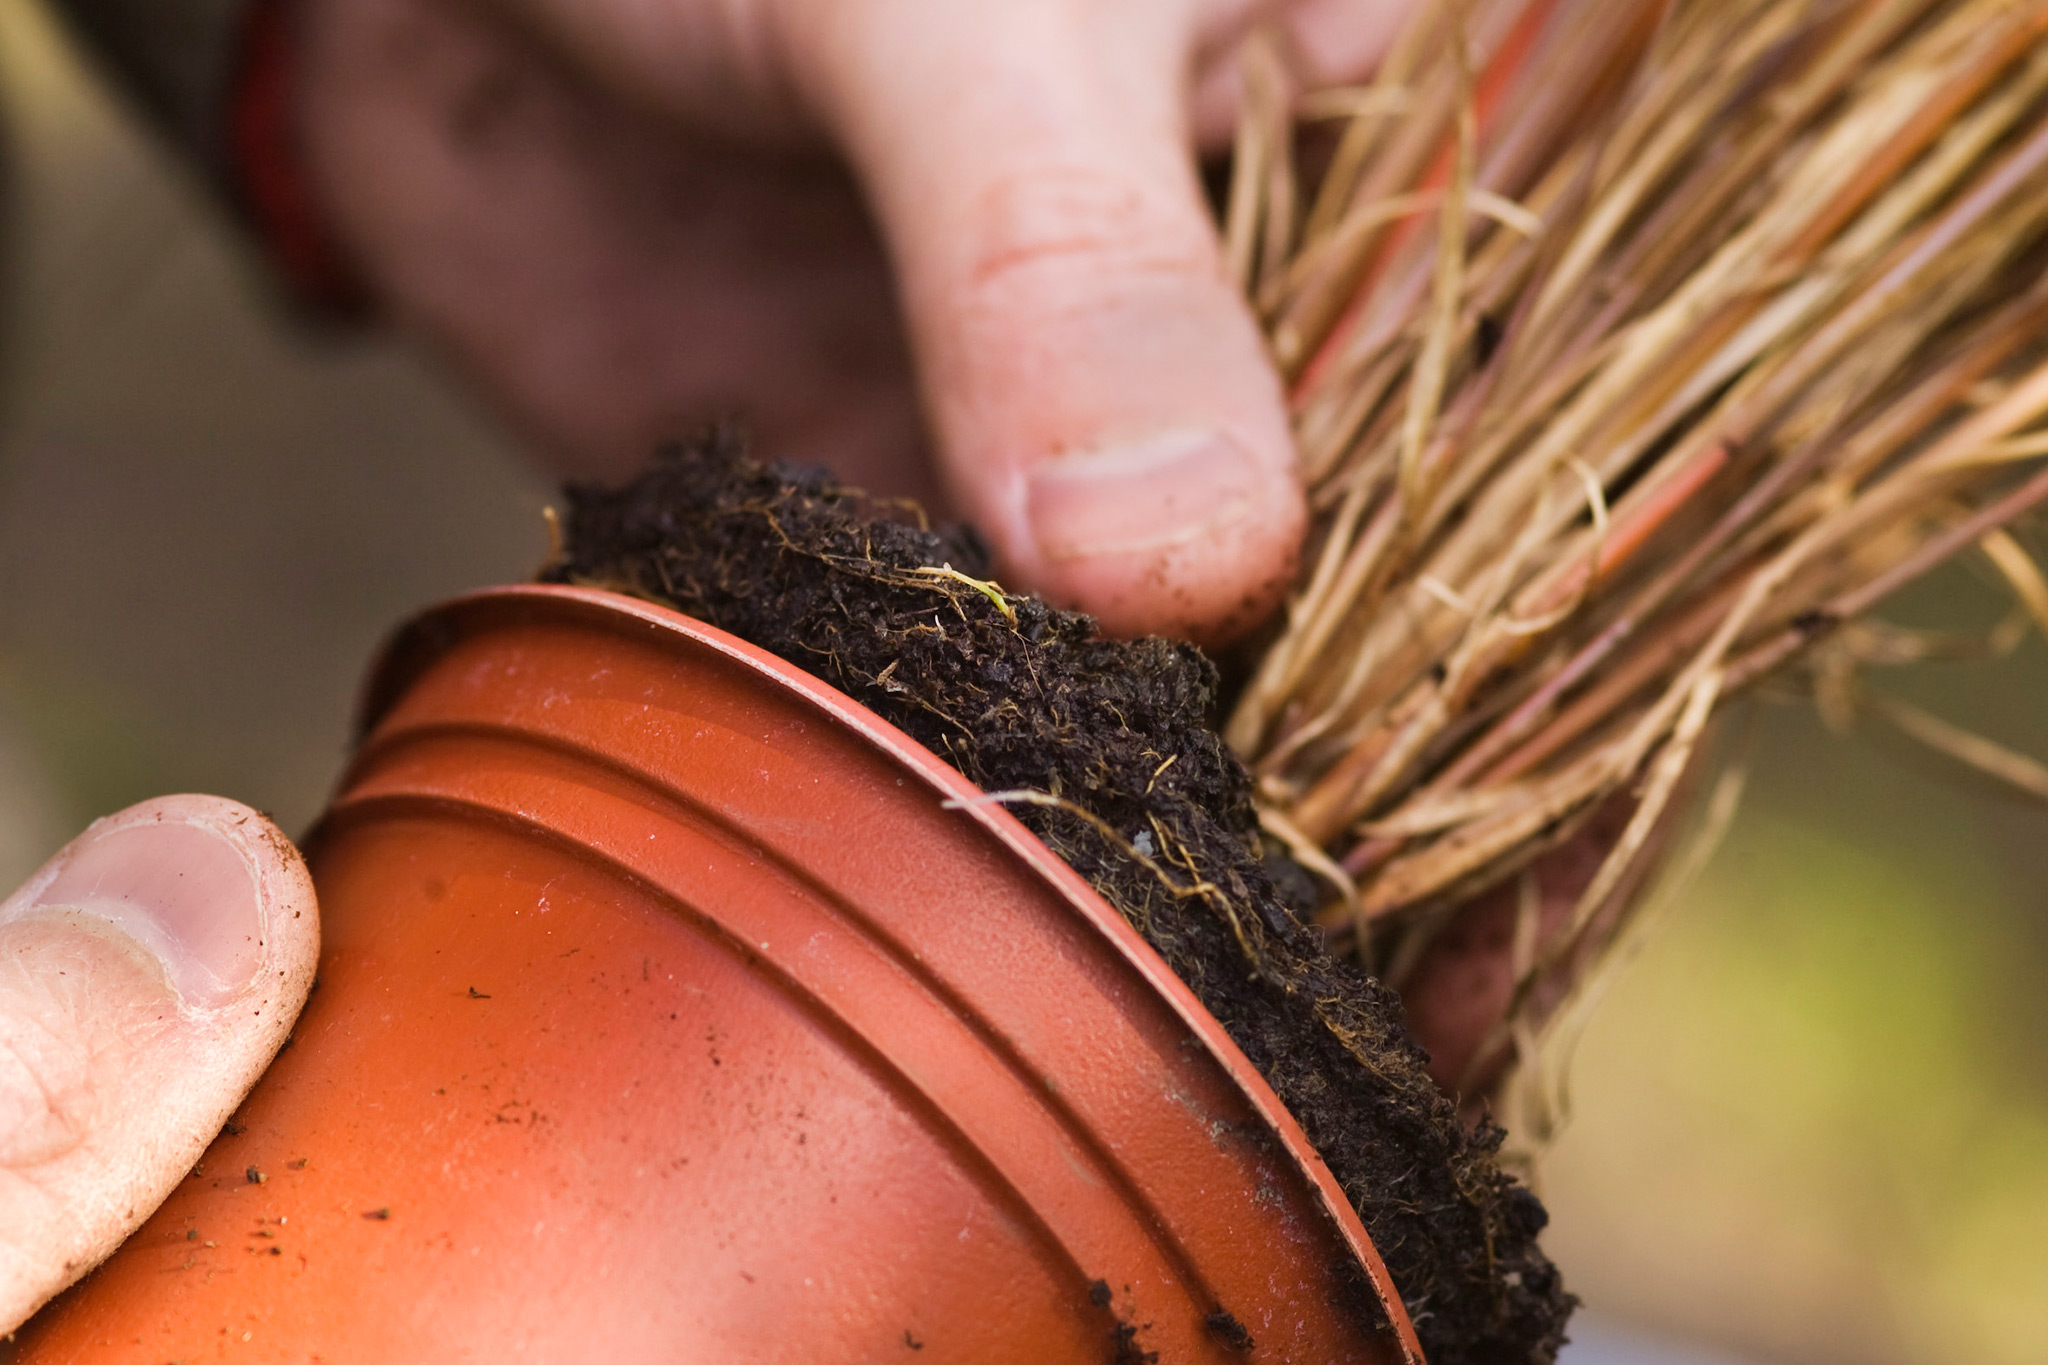 removing-carex-plant-from-its-pot-2